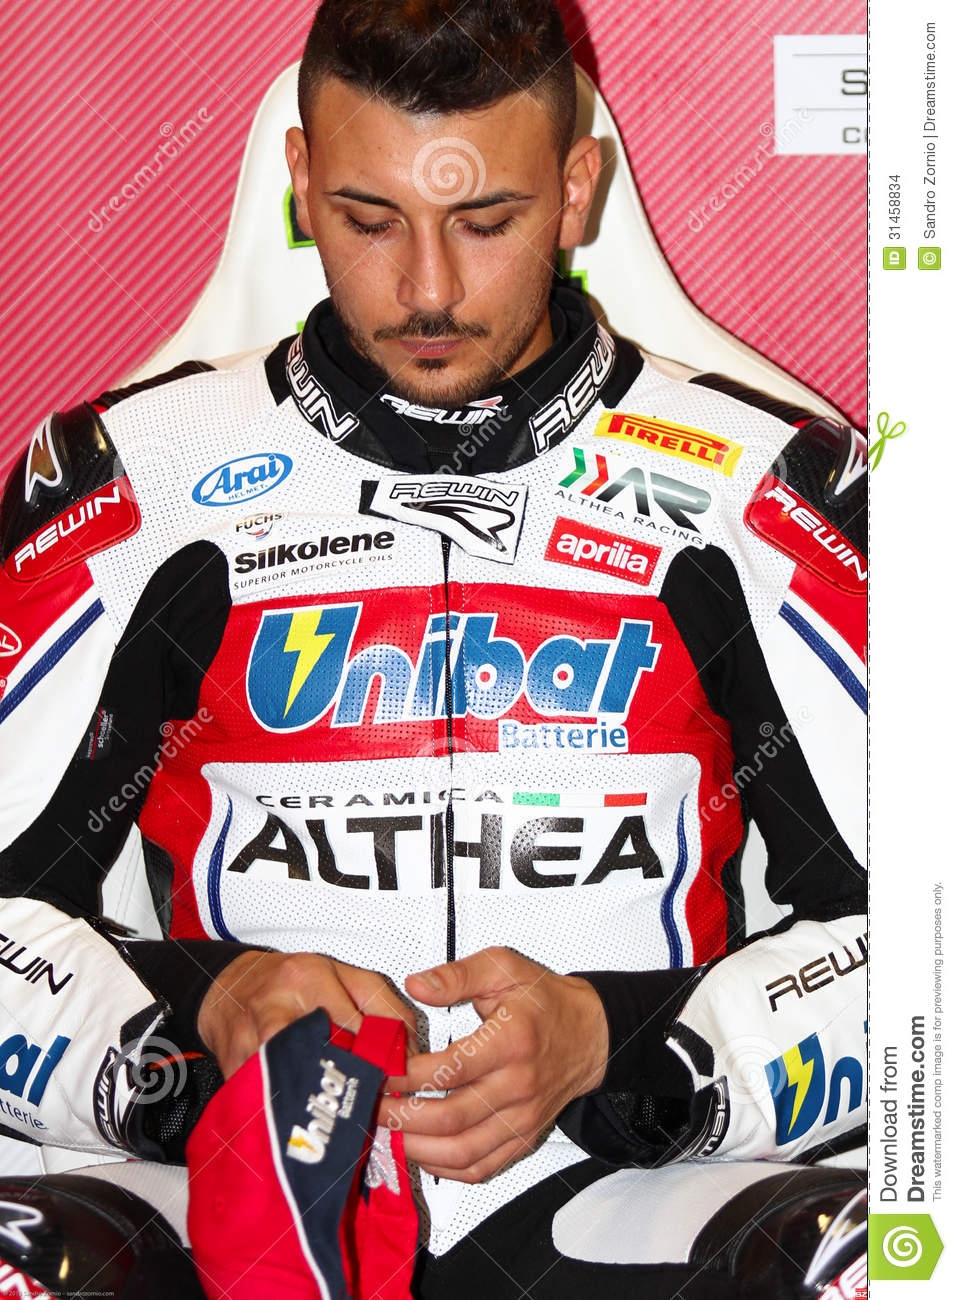 Davide Giugliano #34 on Aprilia RSV4 1000 Factory with Althea Racing Team Superbike WSBK